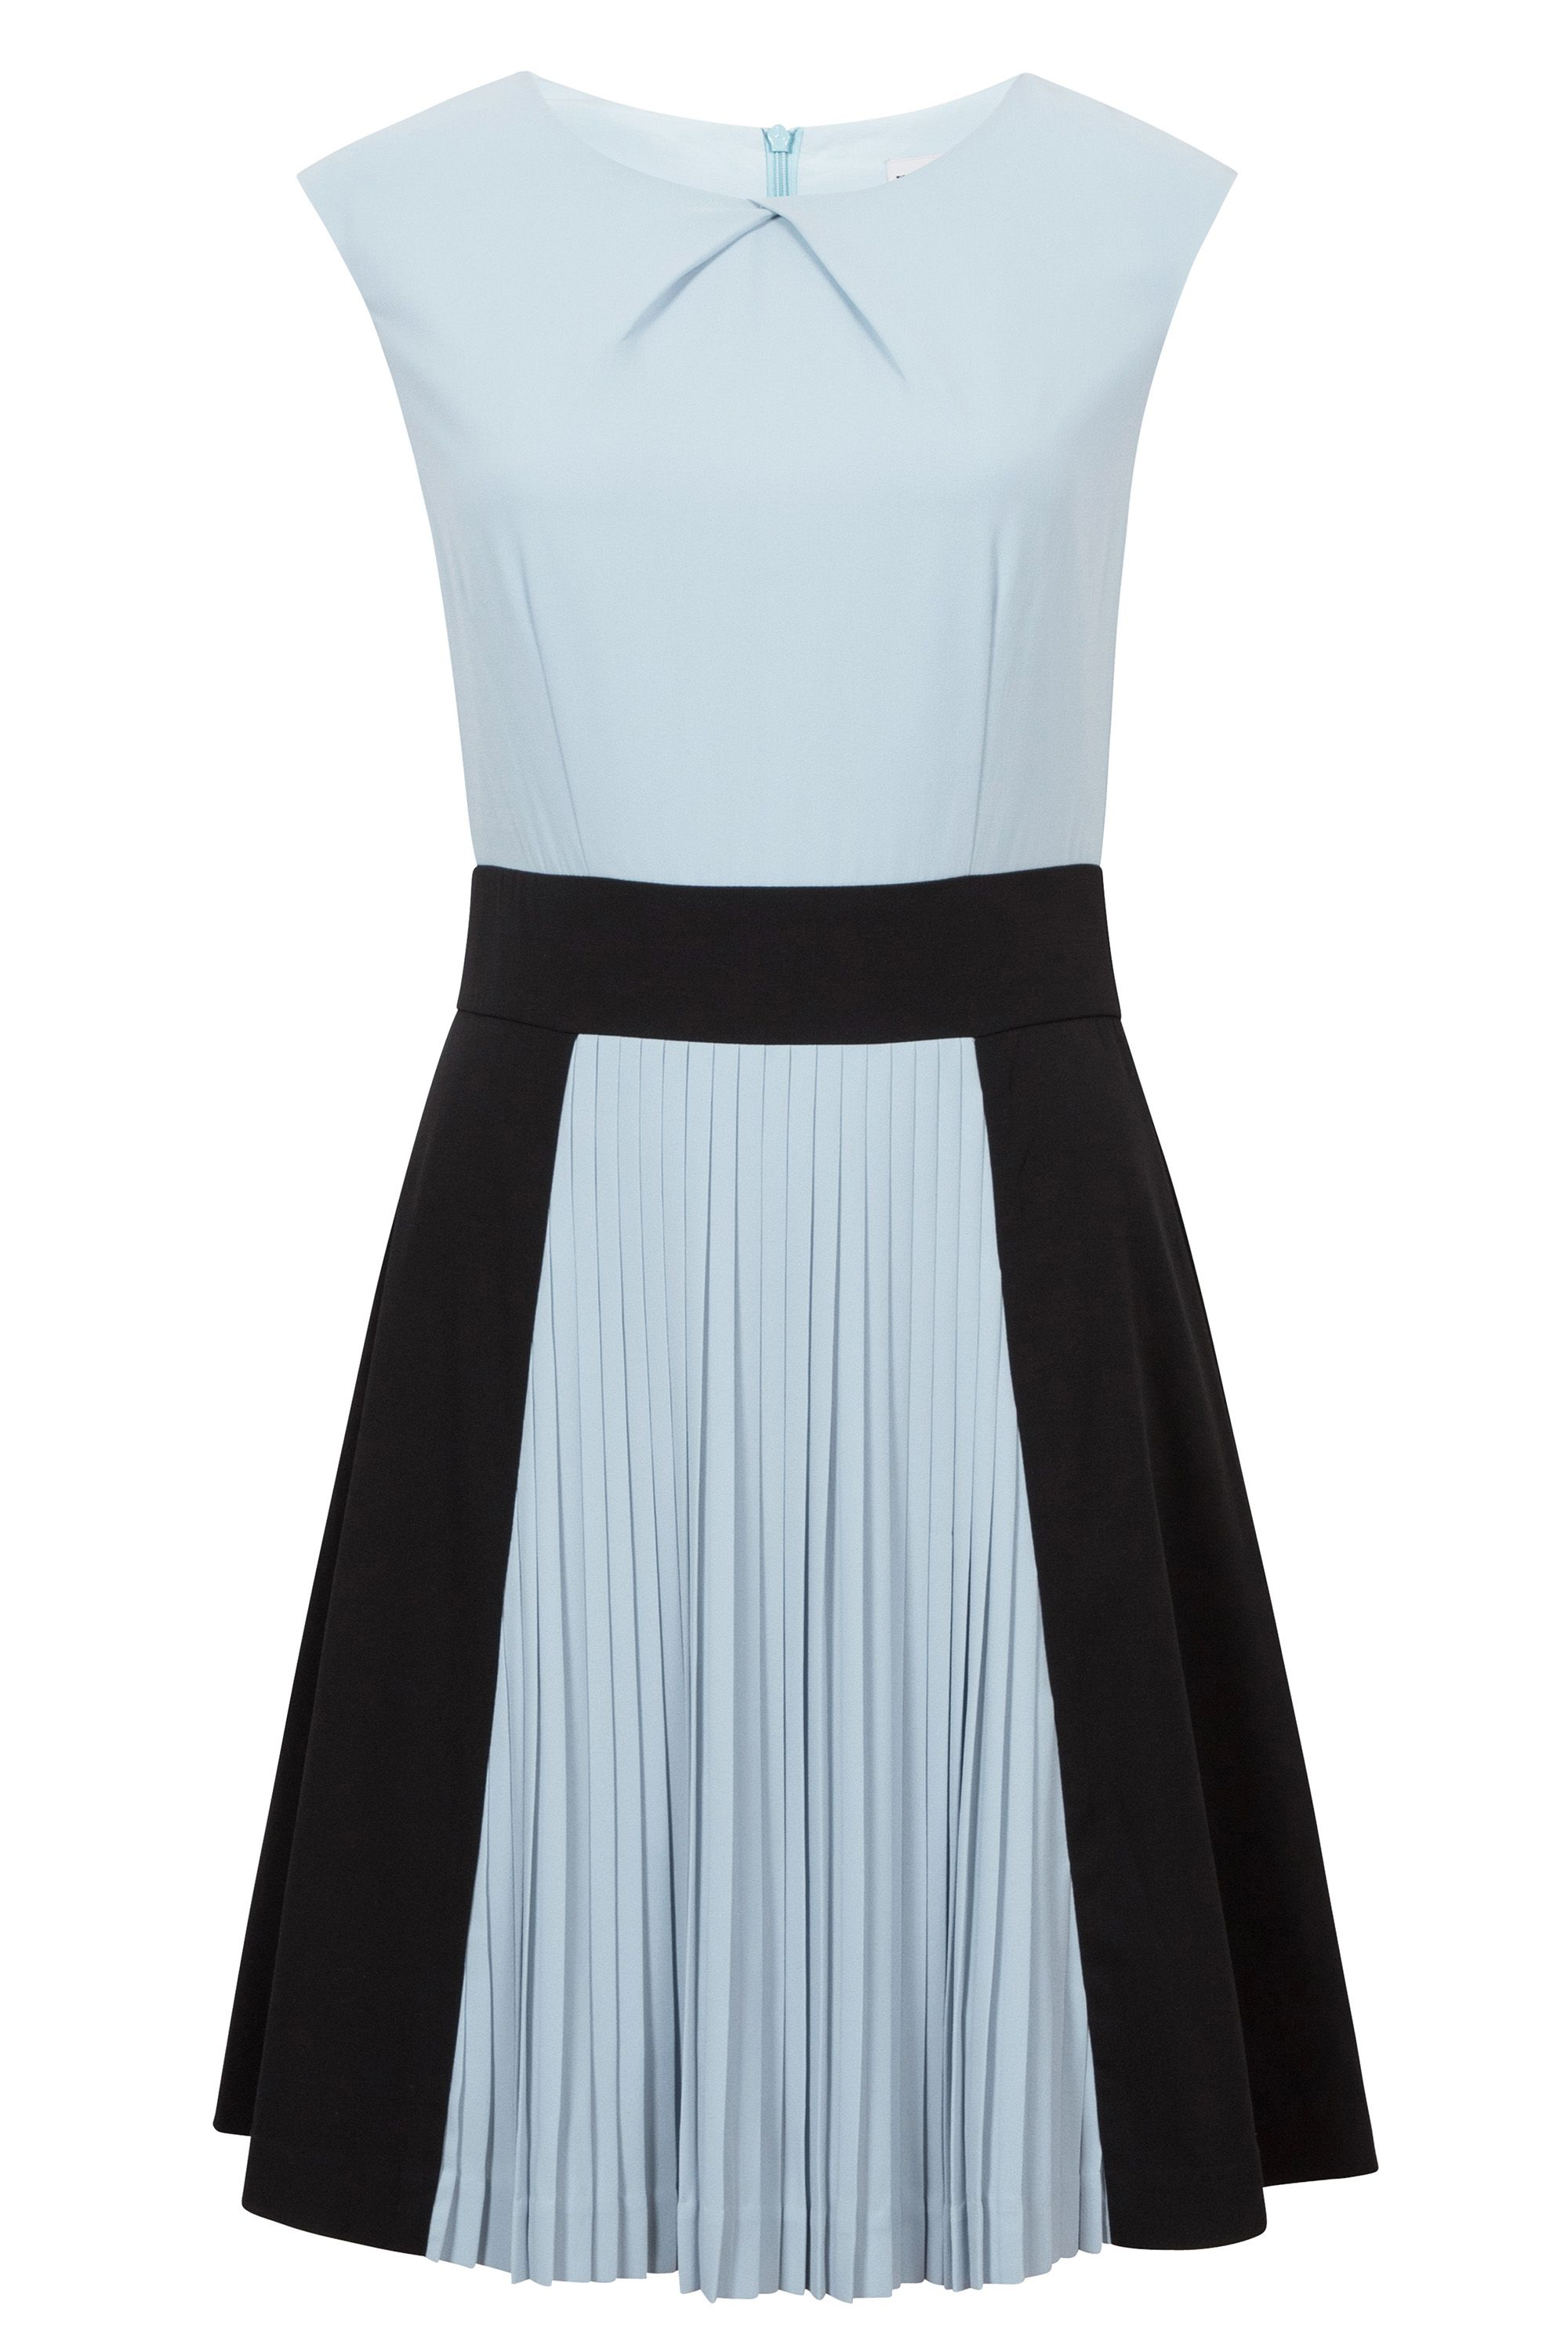 Wolf & Whistle Wolf & Whistle Pleated Colour Block Dress, Multi-Coloured